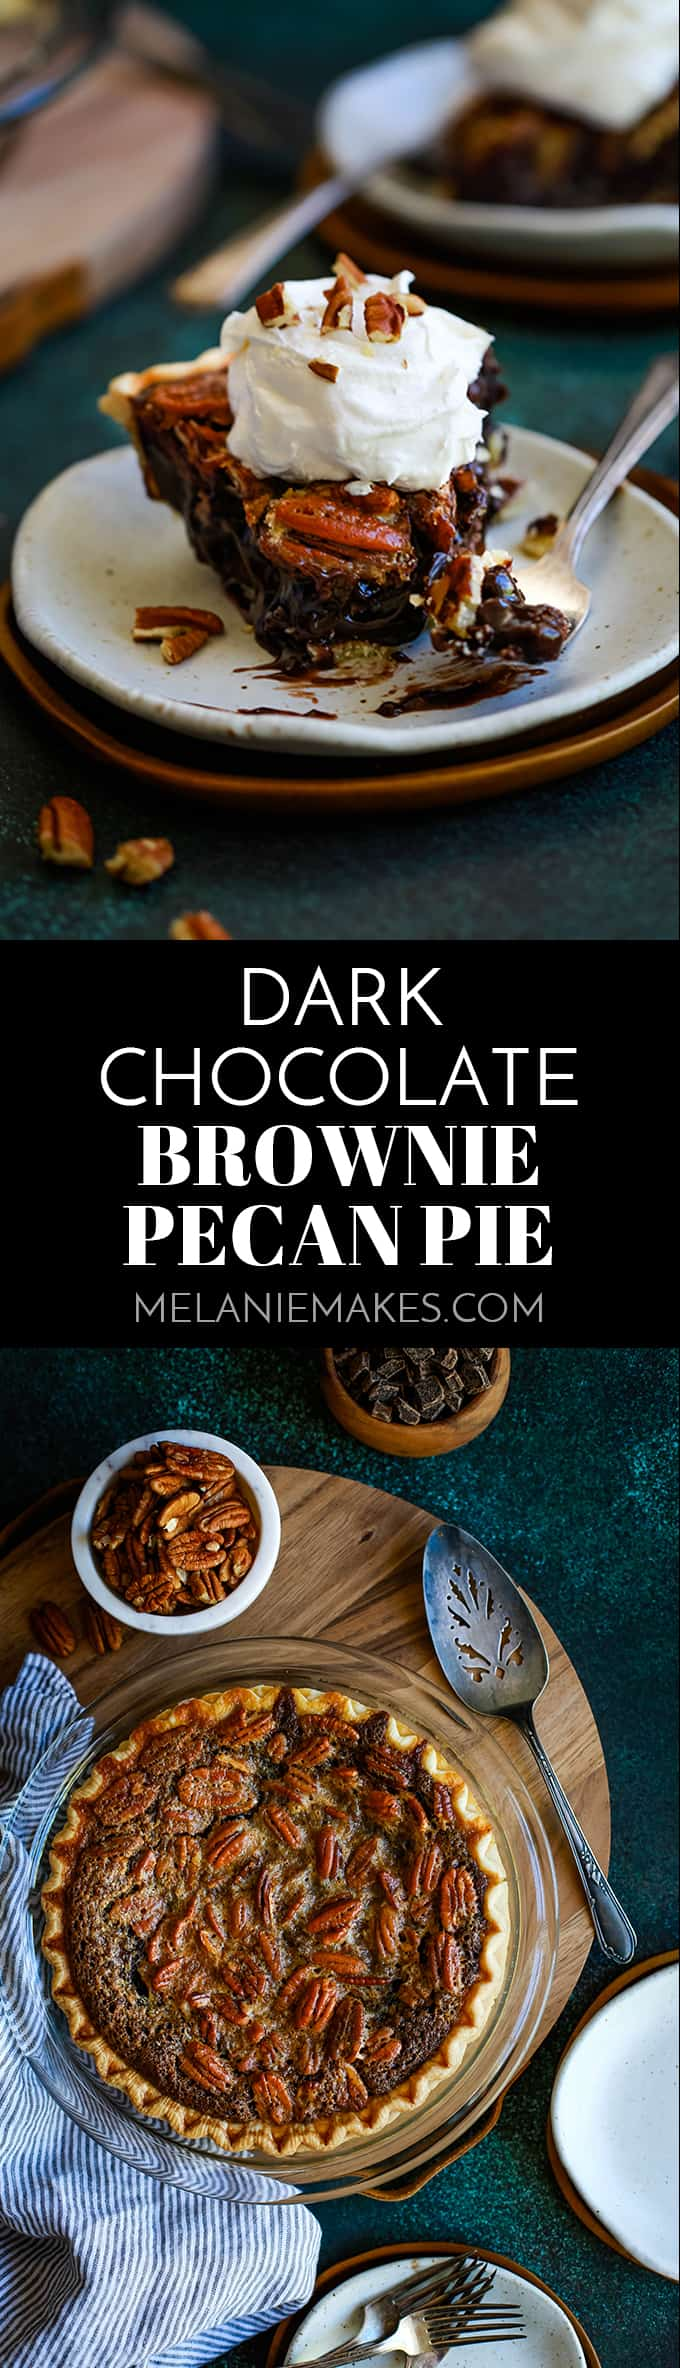 Forget the traditional!  Chocolate chips, brownie batter and hot fudge sauce form the base of this absolutely amazing Dark Chocolate Brownie Pecan Pie. #pecanpie #pie #chocolate #brownies #thanksgiving #christmas #desserts #easydessert